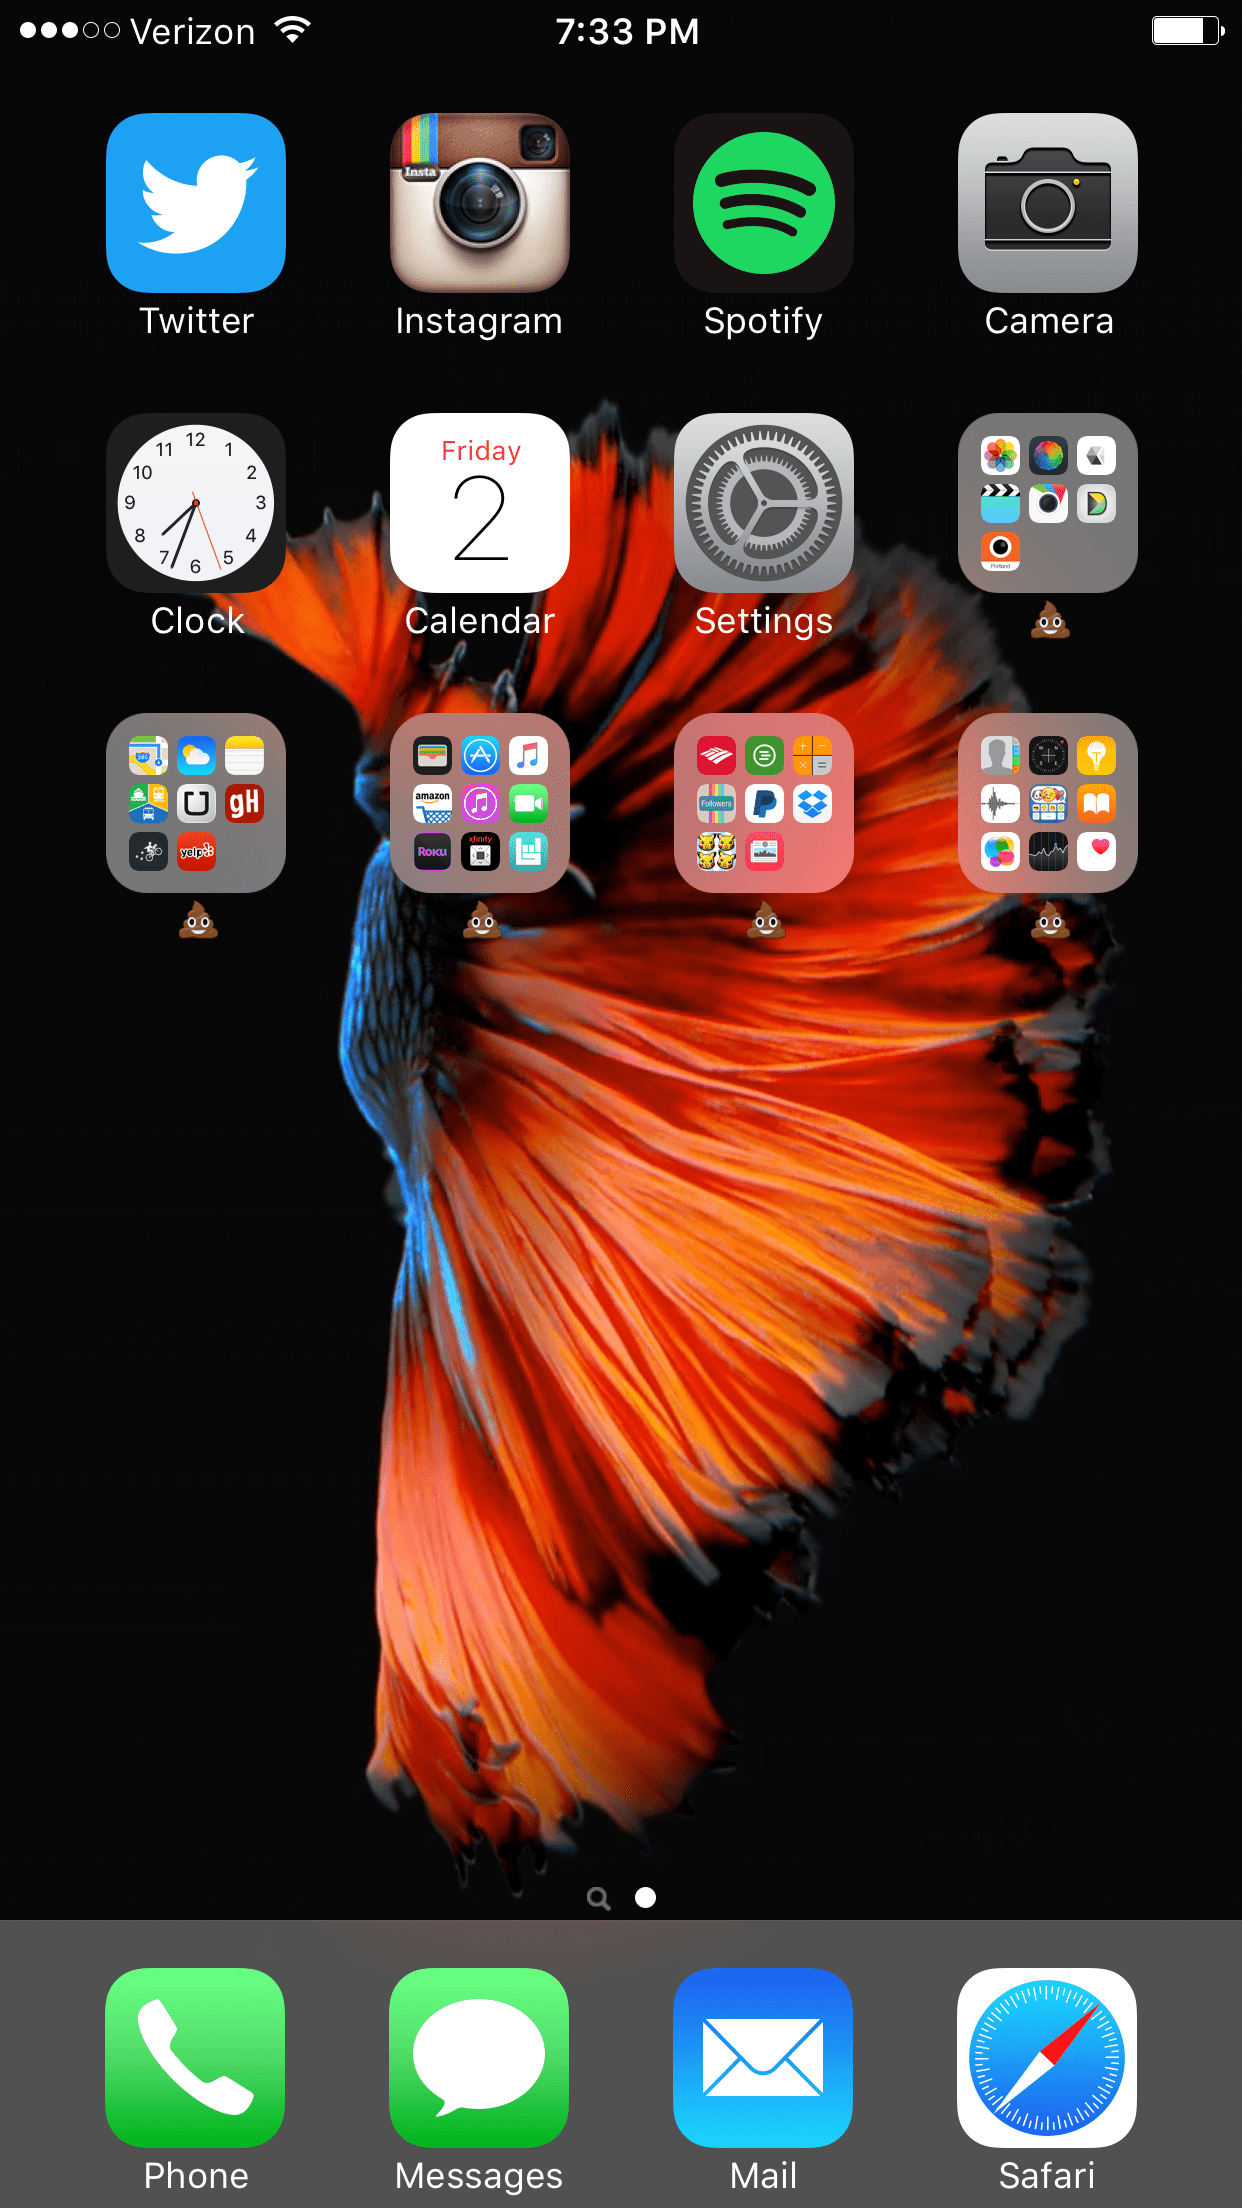 Mac Wallpaper Quote Iphone 6 S Post Your Iphone 6s 6s Plus Home Screen